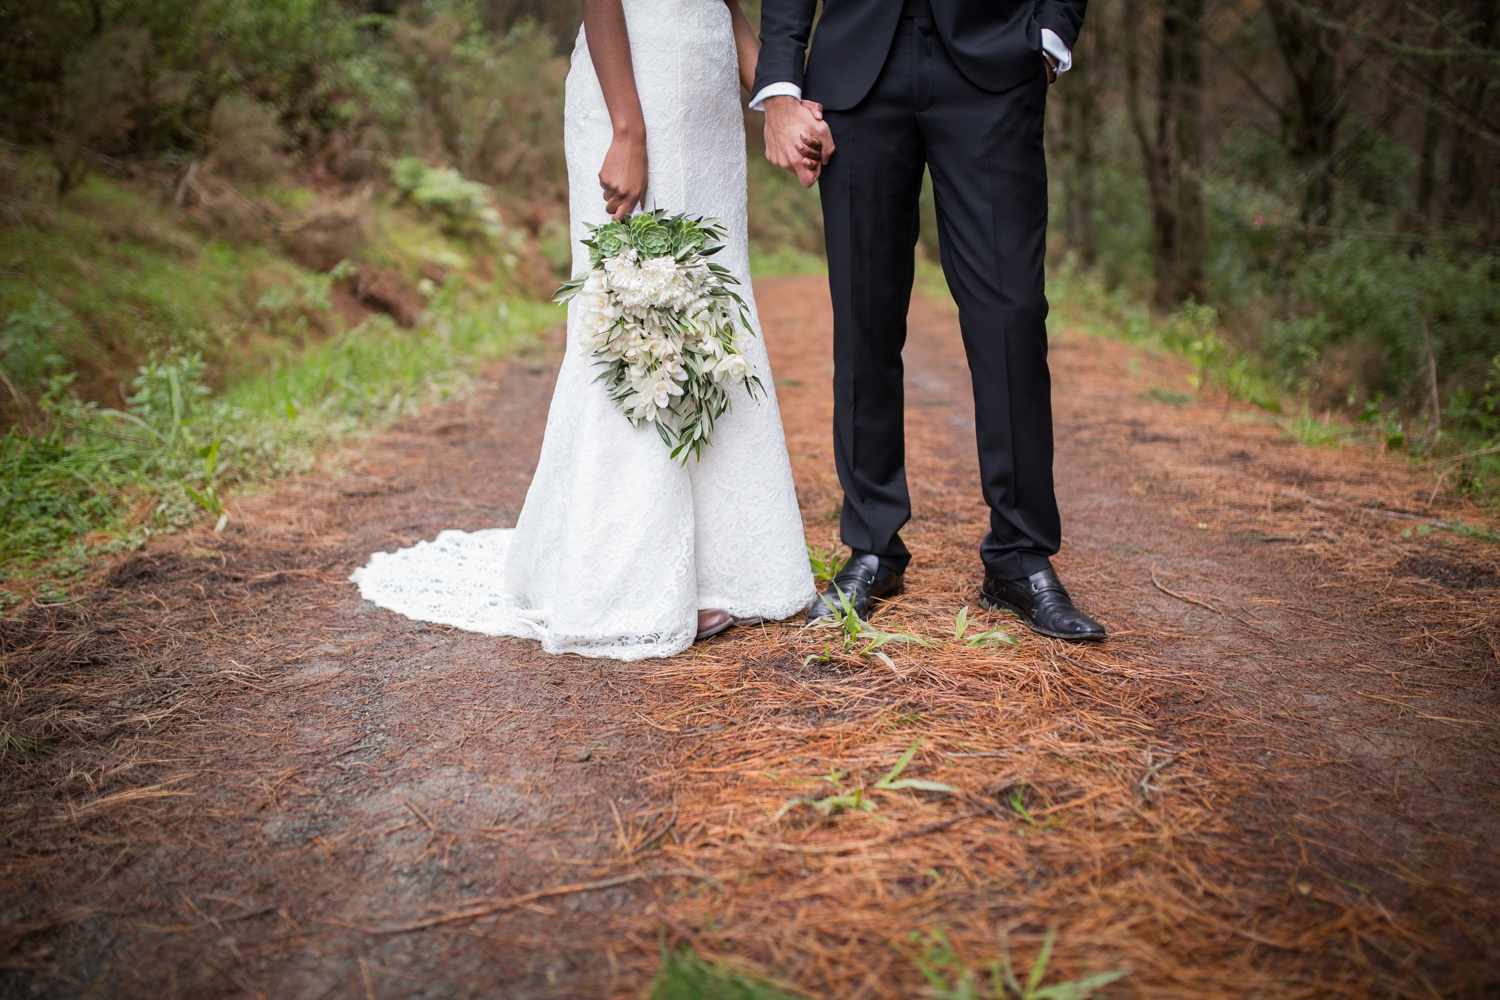 006_aucklandforestwedding.jpg